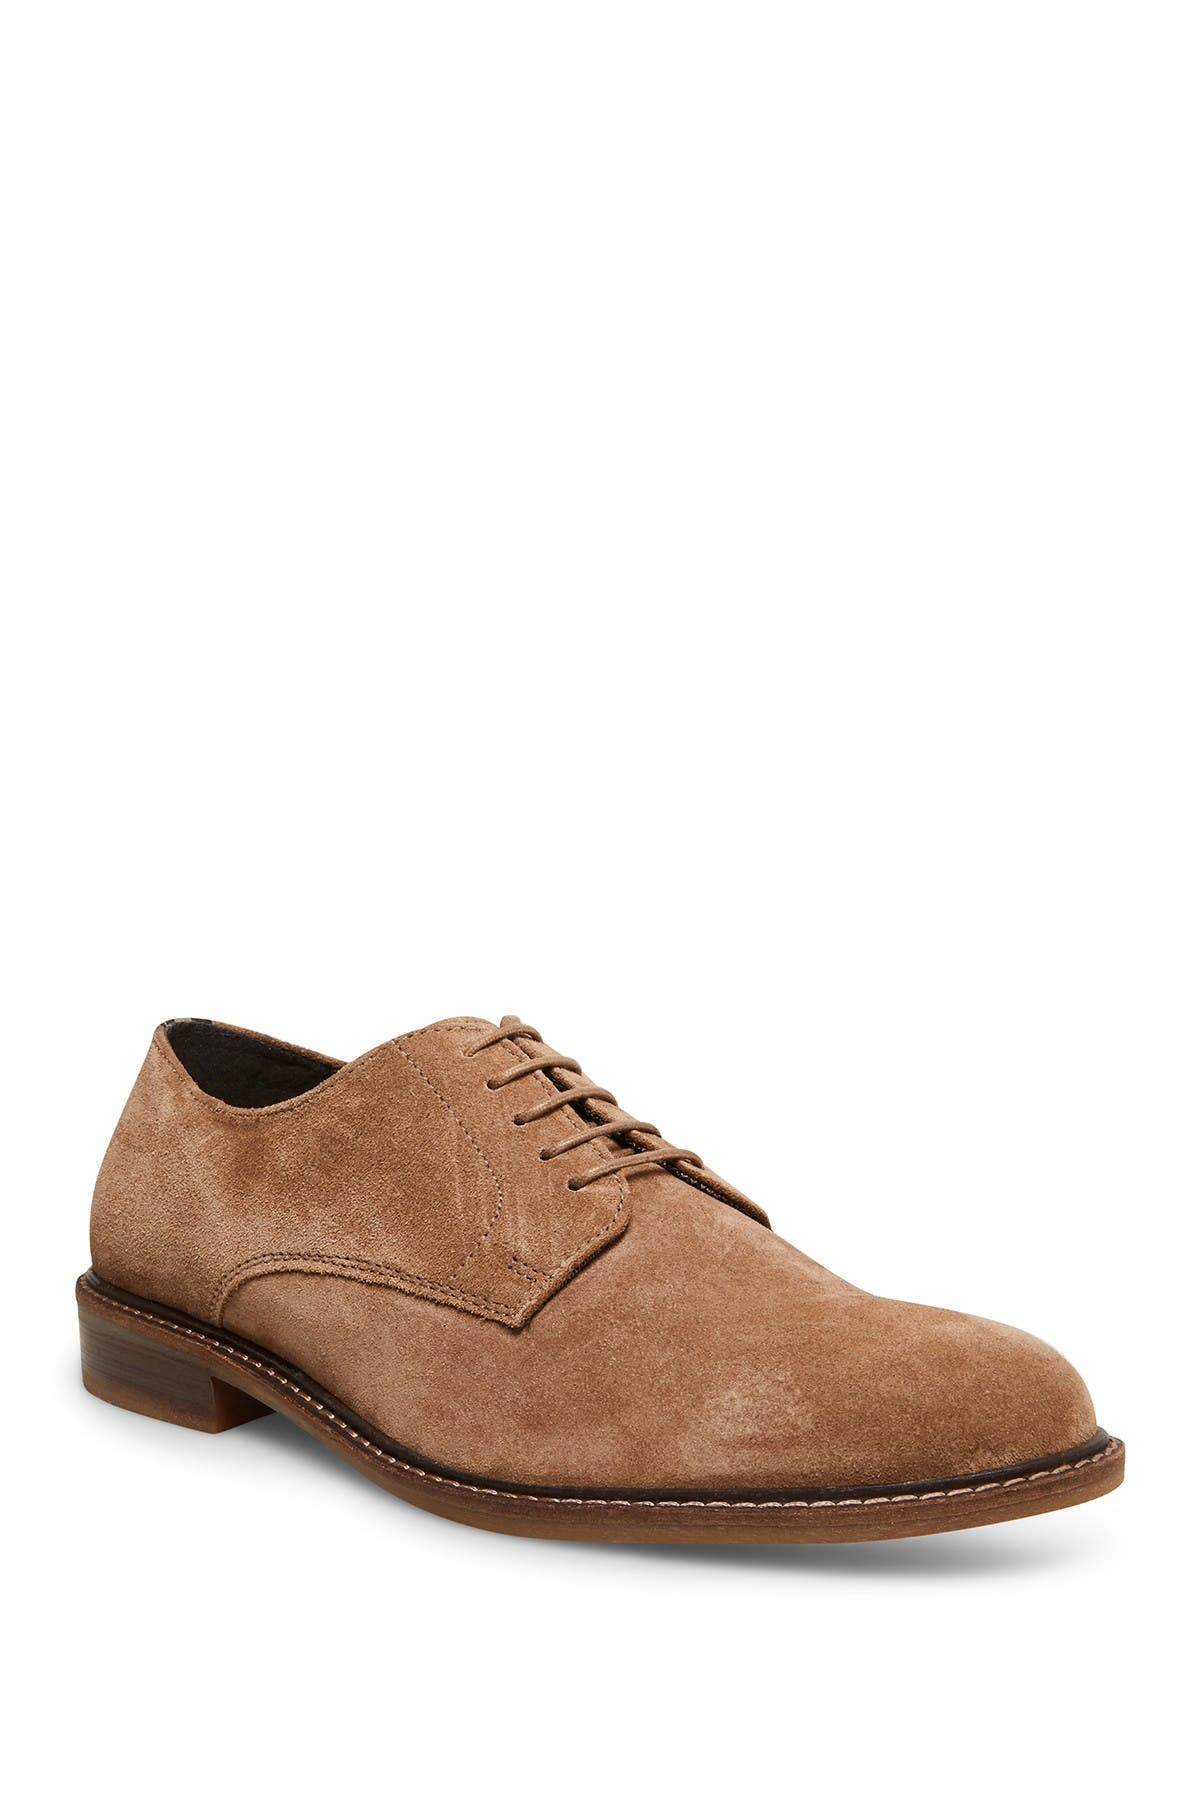 Image of Steve Madden Plain Toe Dress Shoe